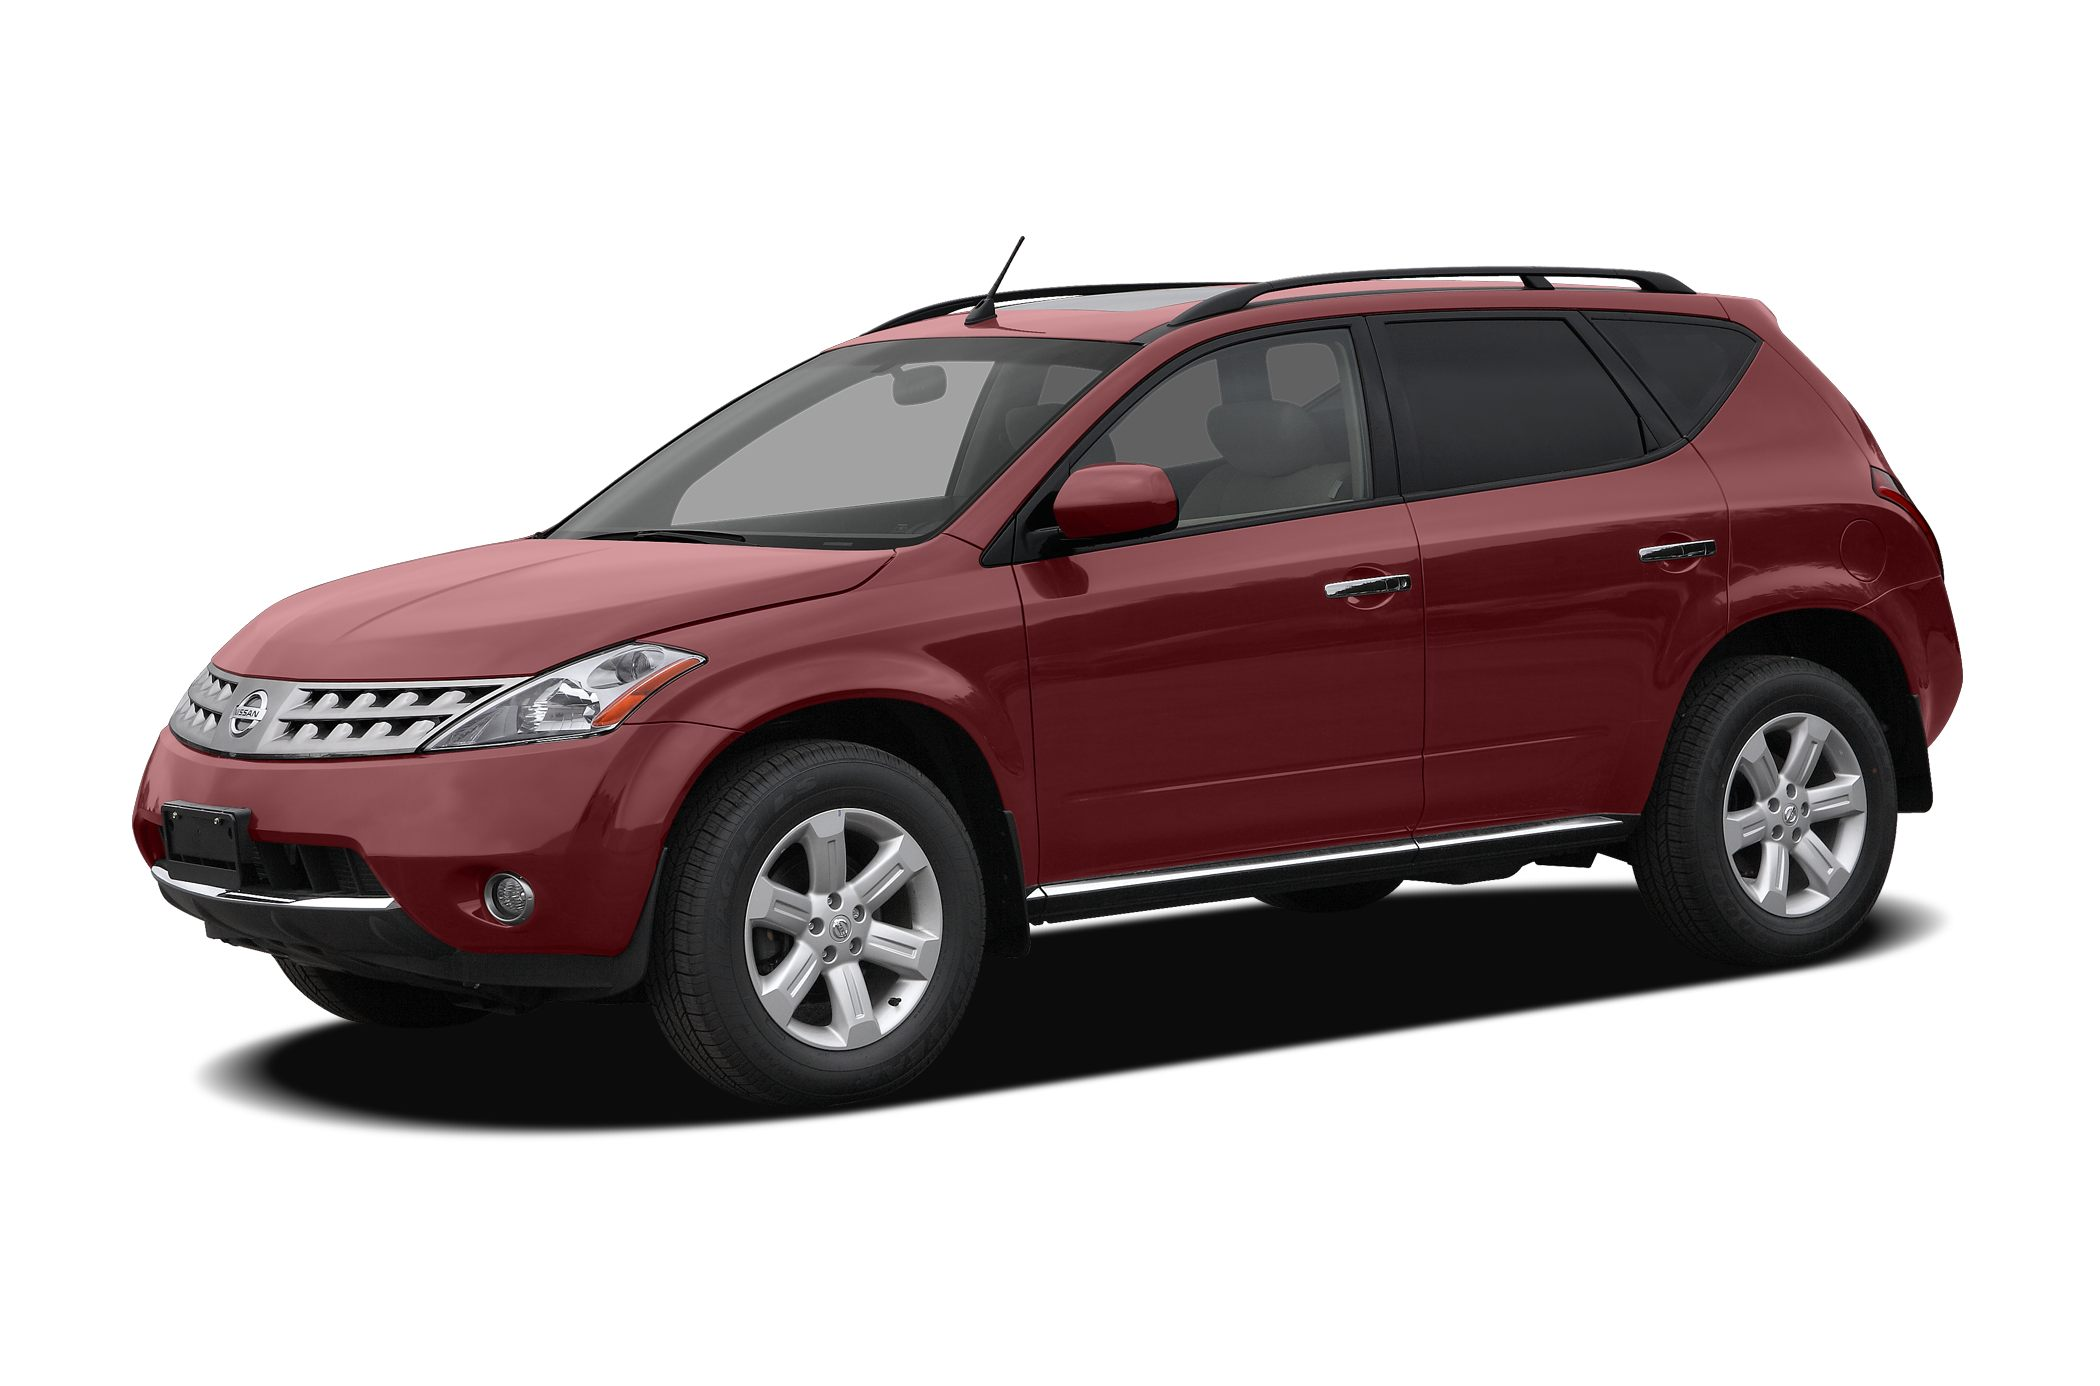 2007 Nissan Murano S SUV for sale in Baton Rouge for $11,980 with 76,130 miles.